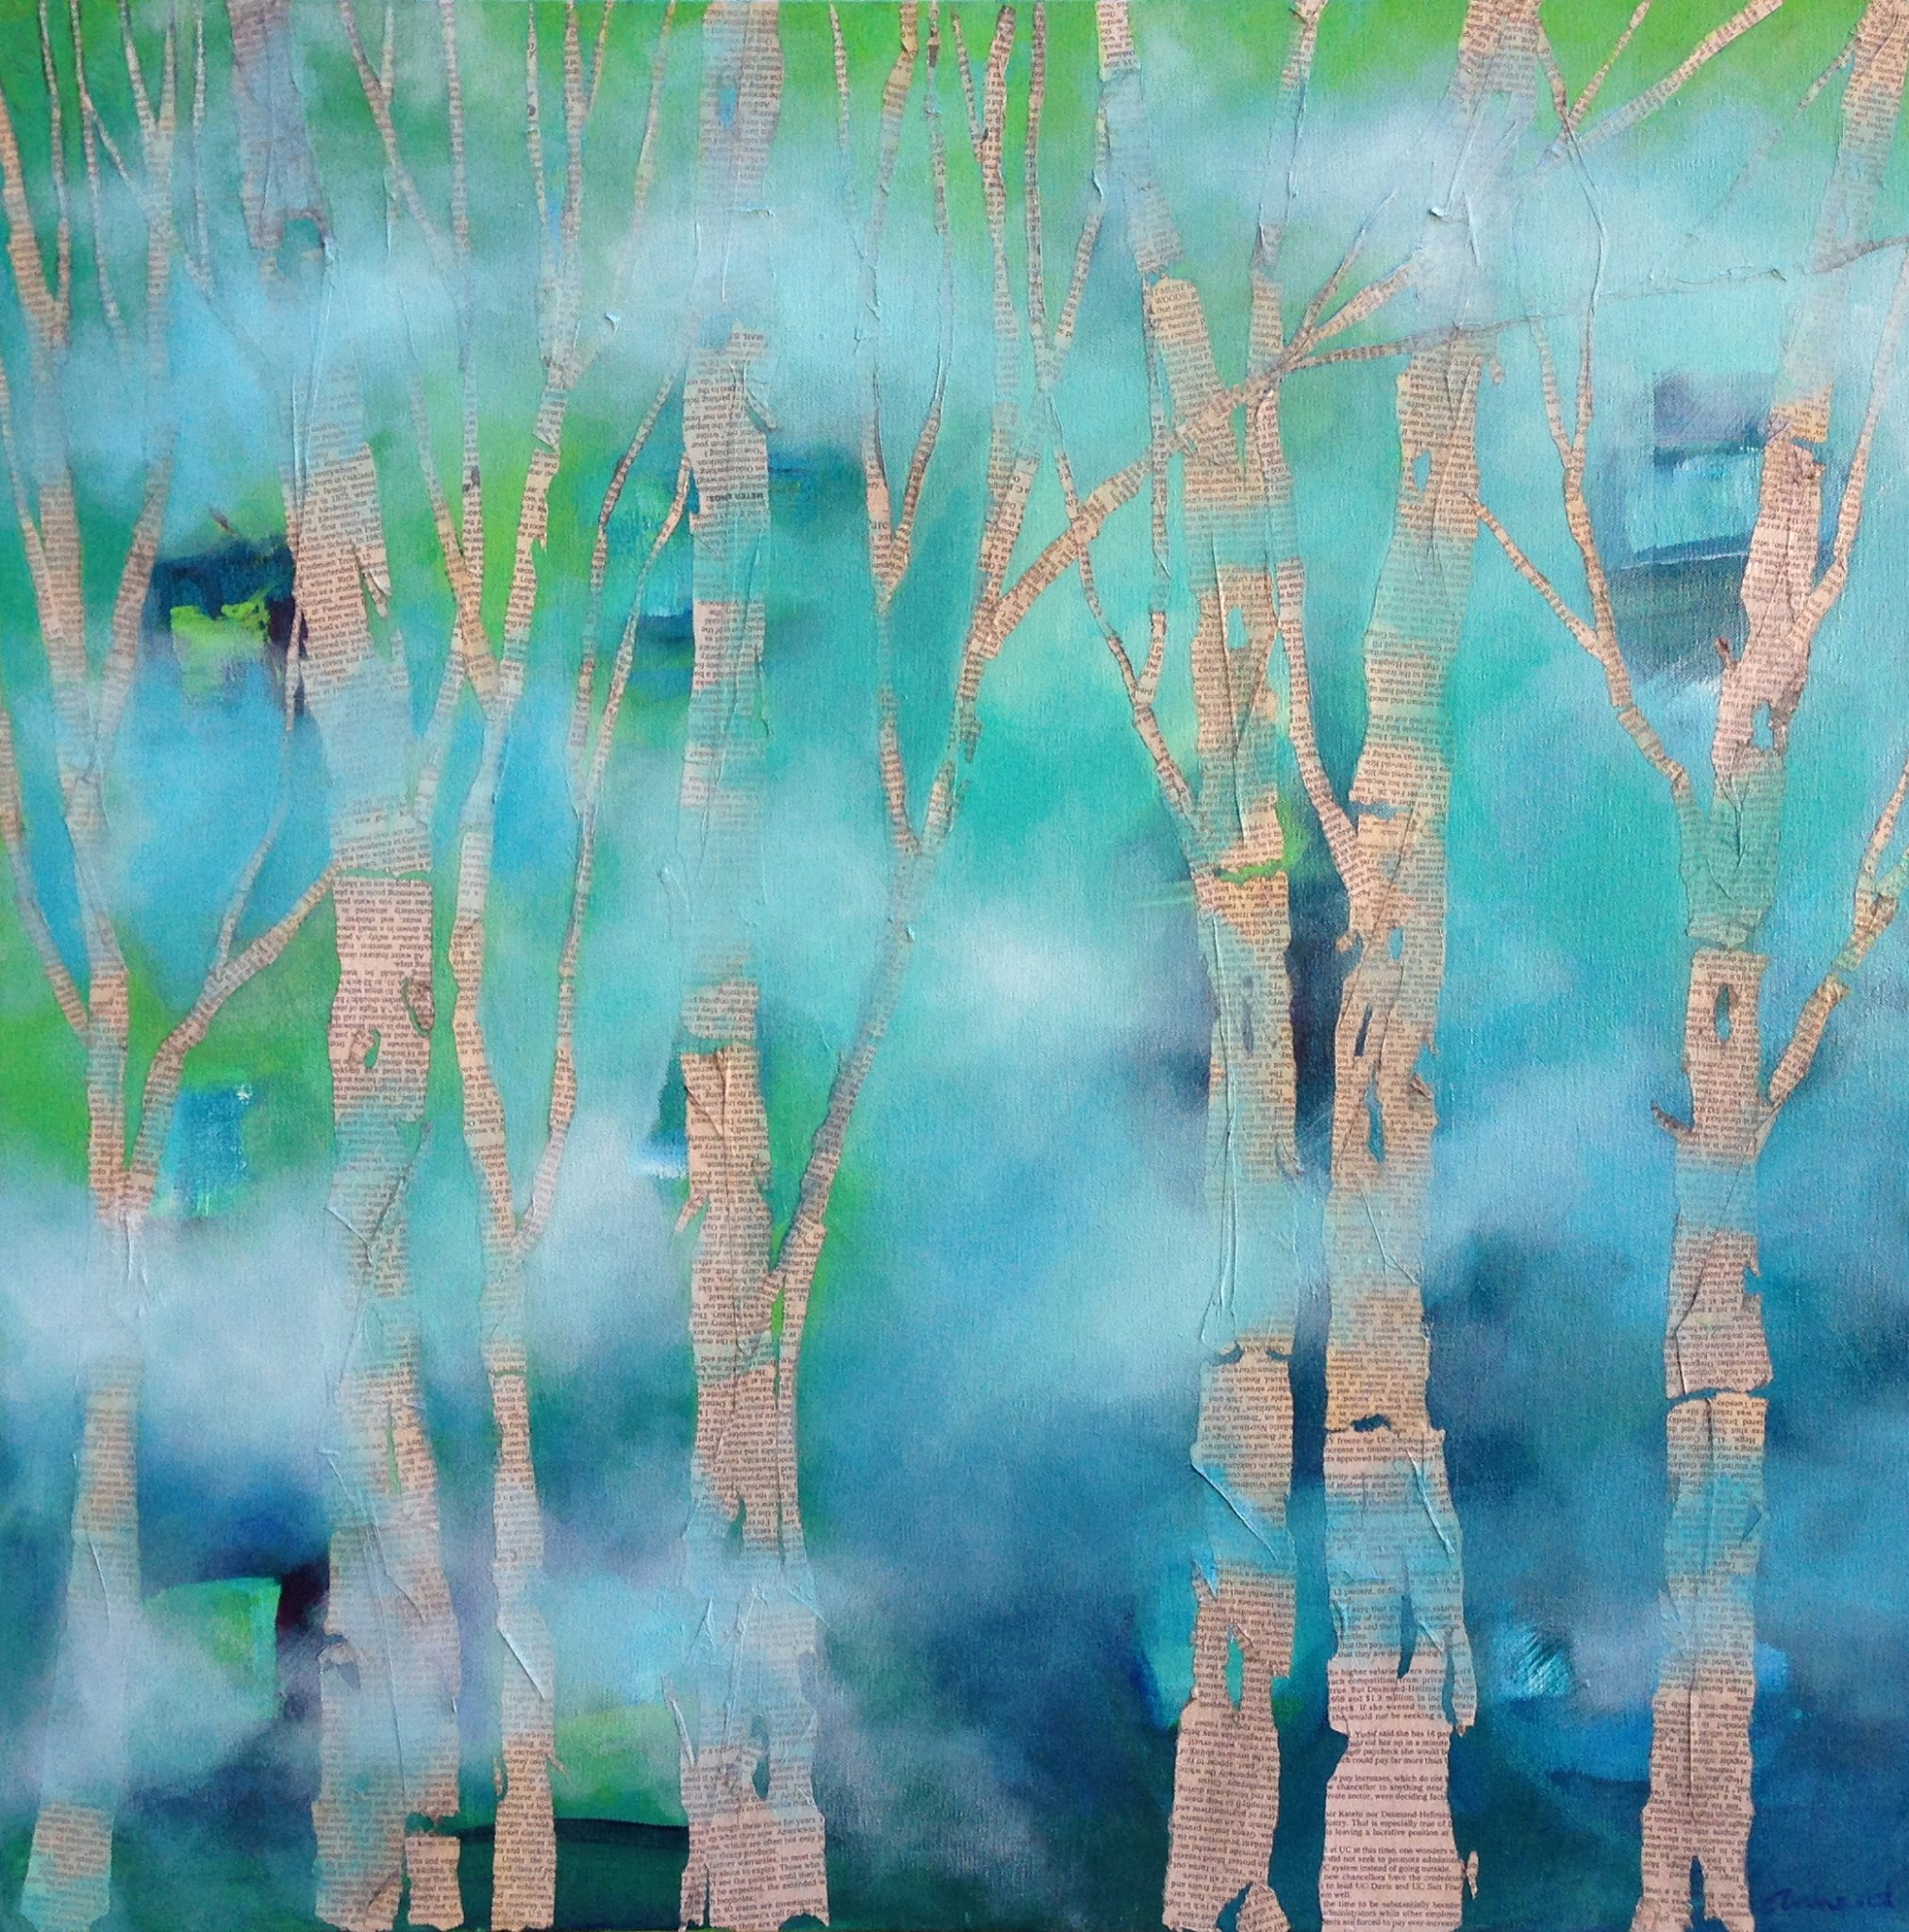 Aqua Trees Available in PRINT - Click On Image